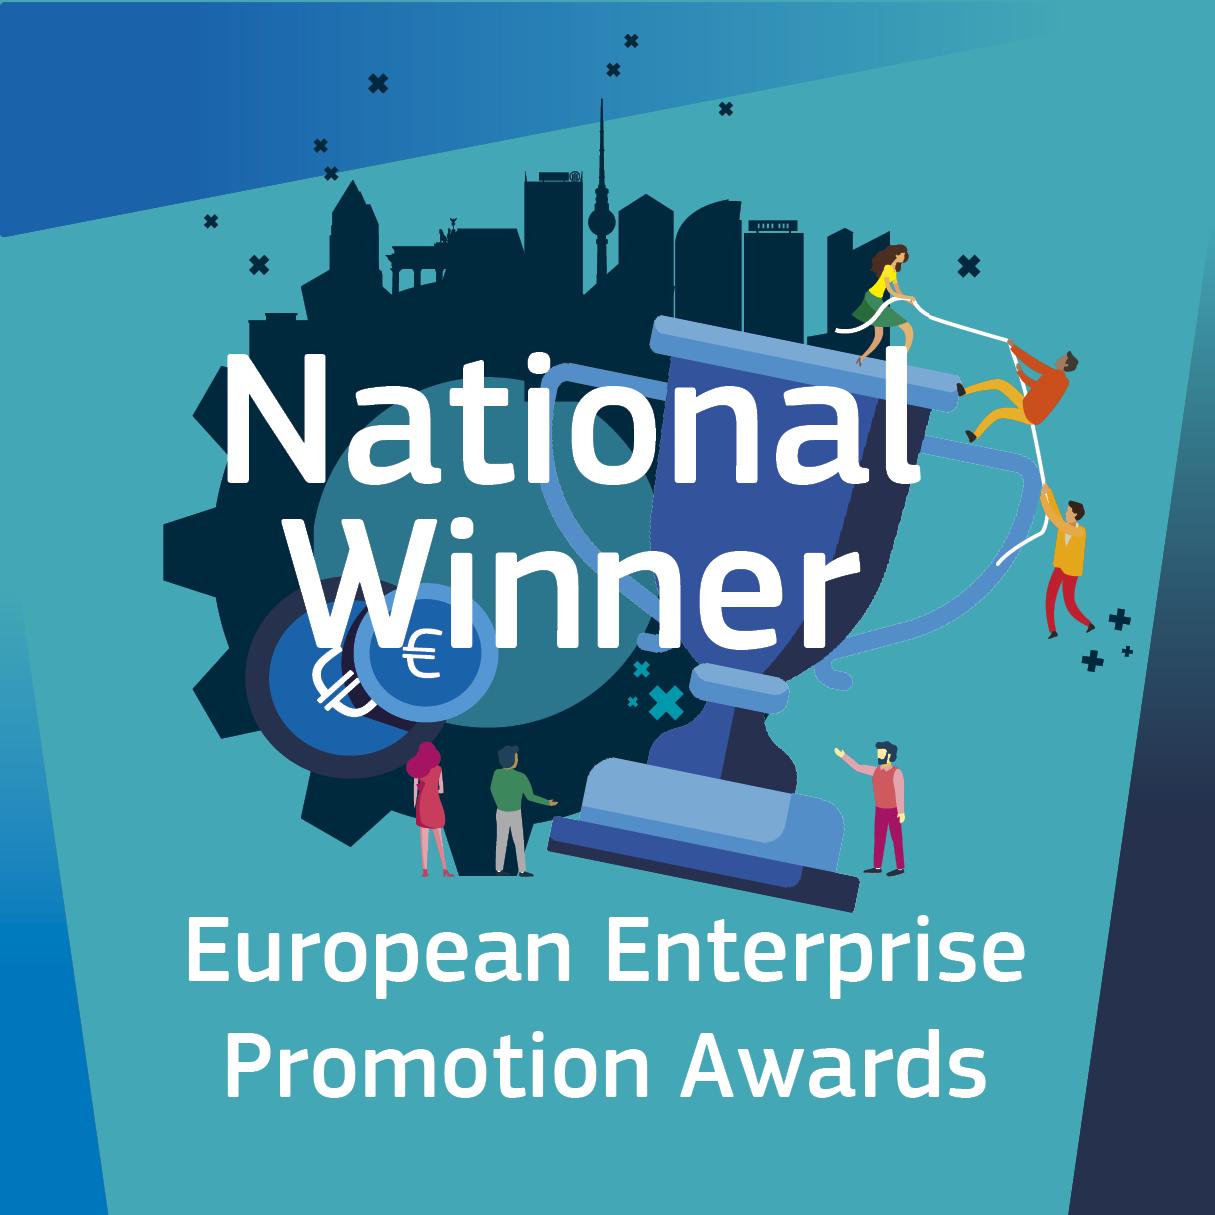 "Plakette mit Auszeichnung ""National Winner"" beim European Enterprise Promotion Award."